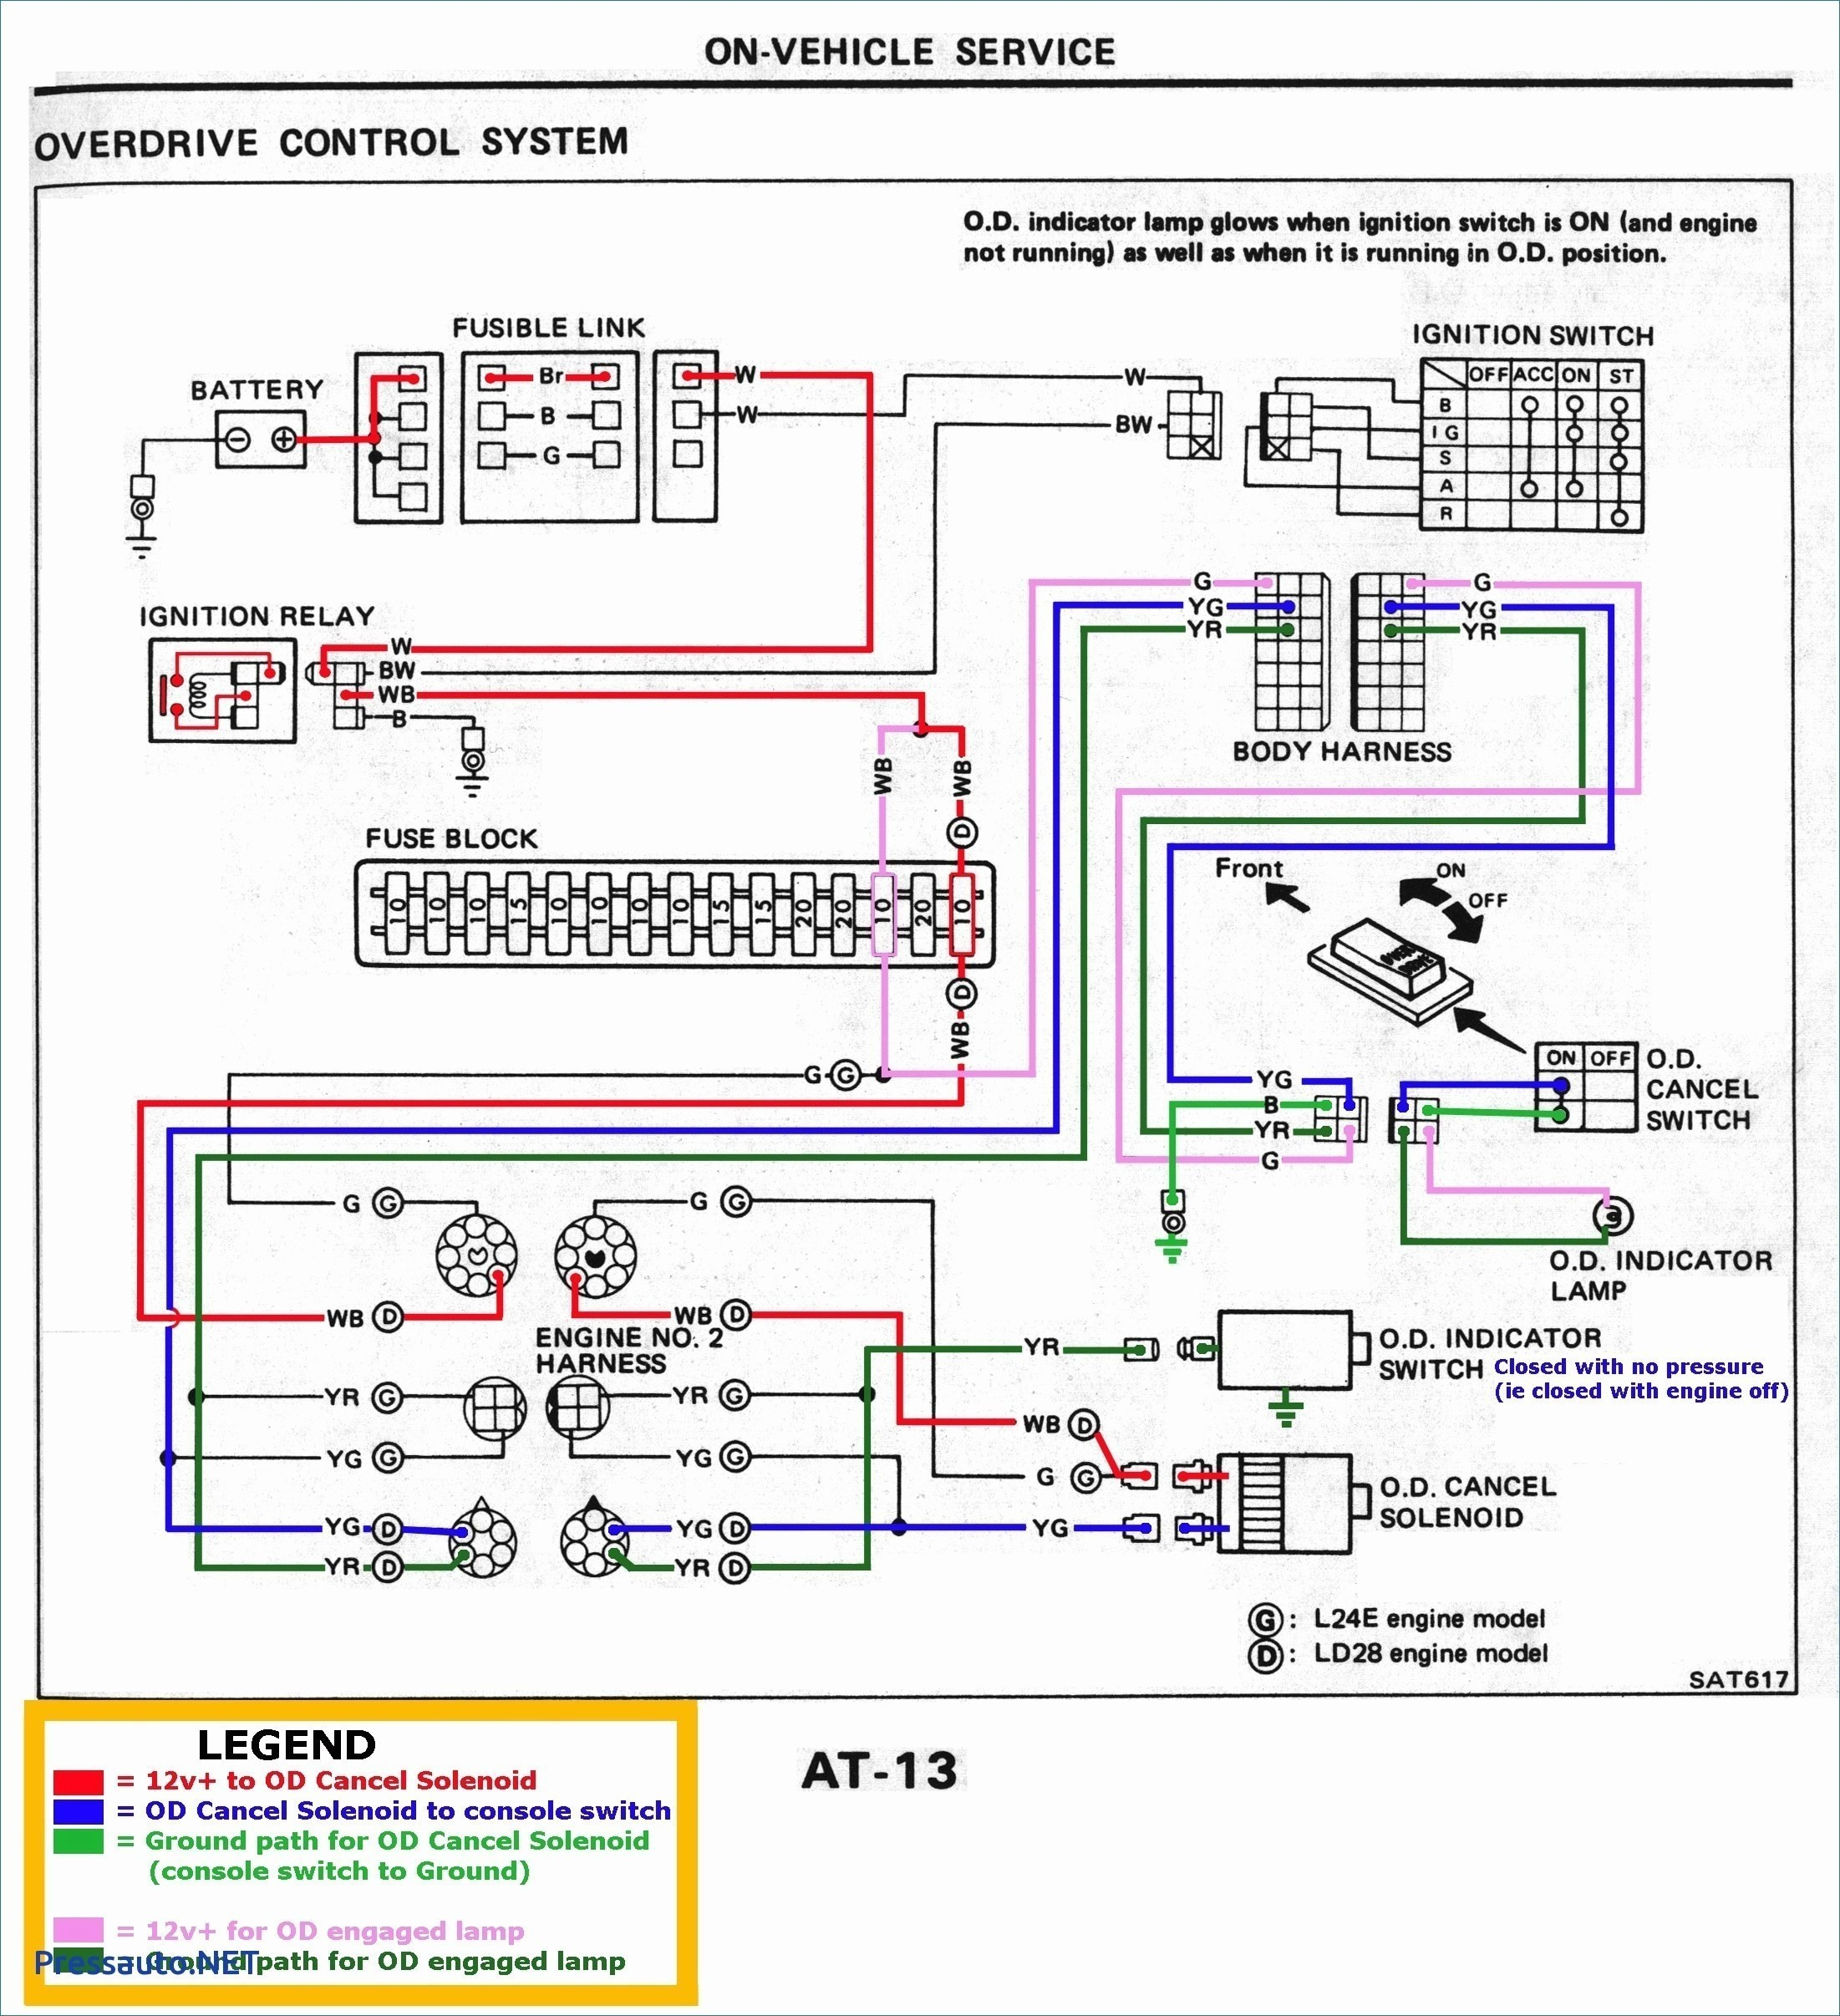 E36 Ignition Switch Wiring Diagram Best Wiring Diagram For Ignition